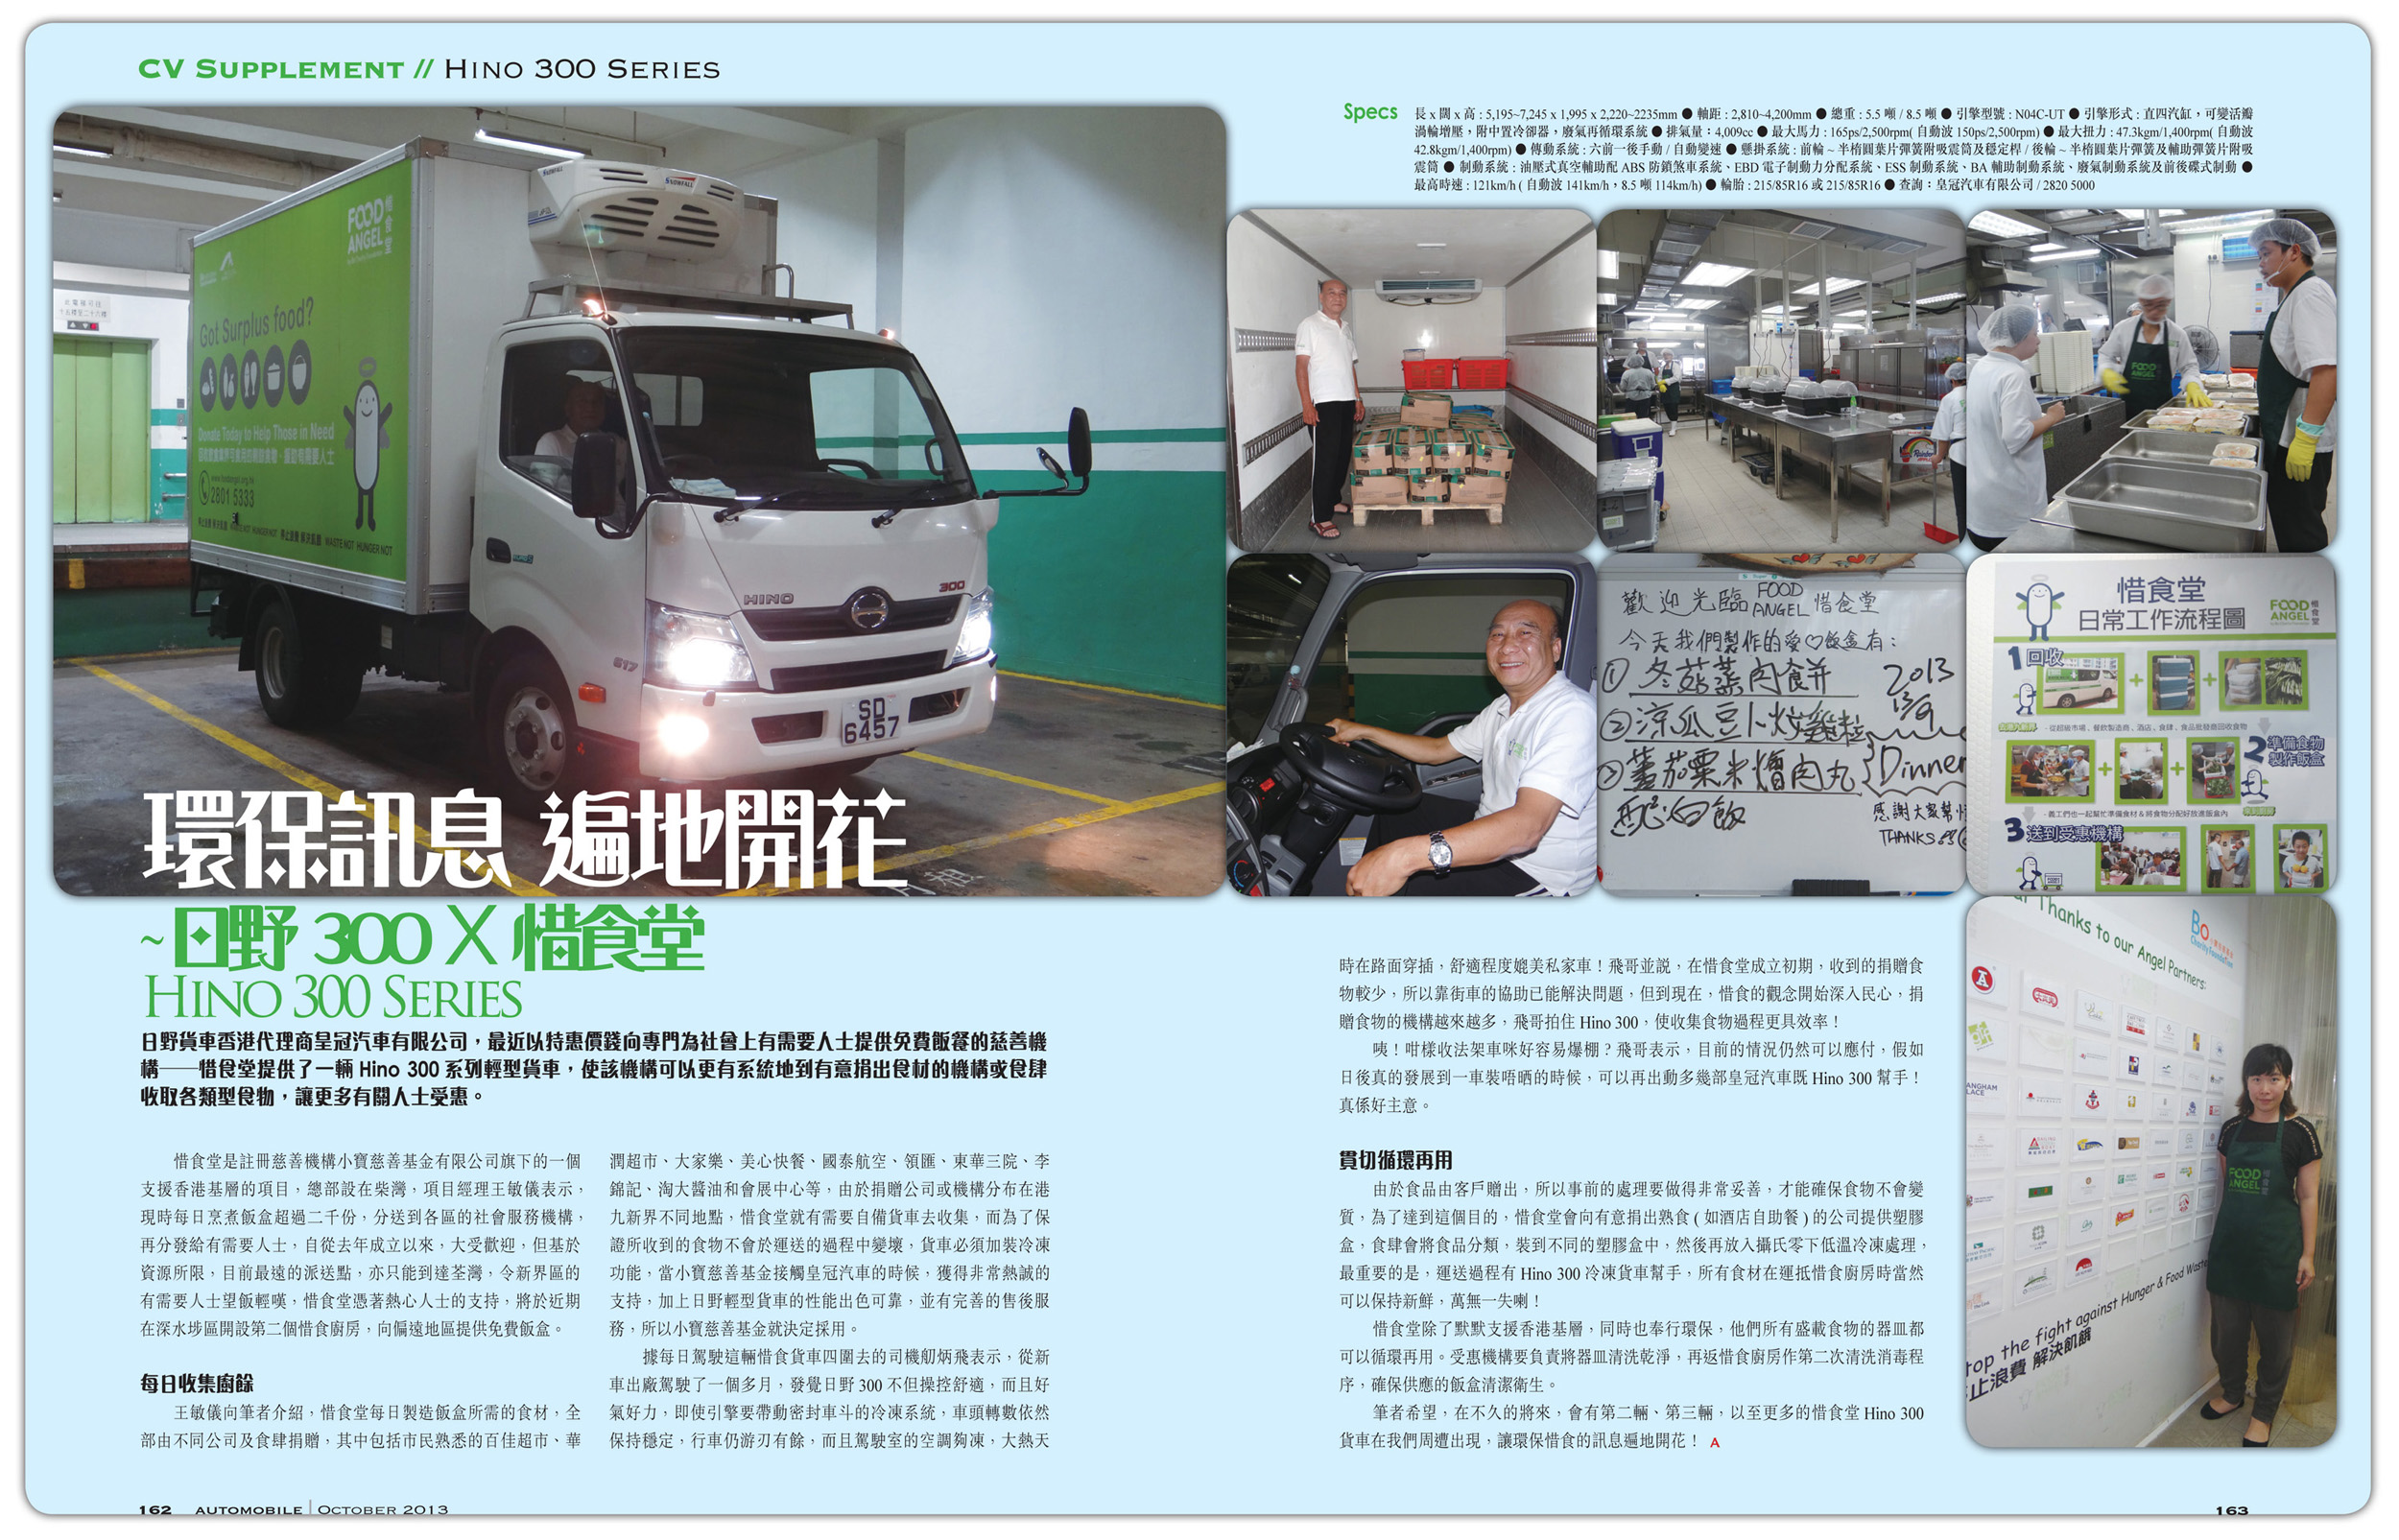 Spreading Green Messages - Hino 300 x Food Angel